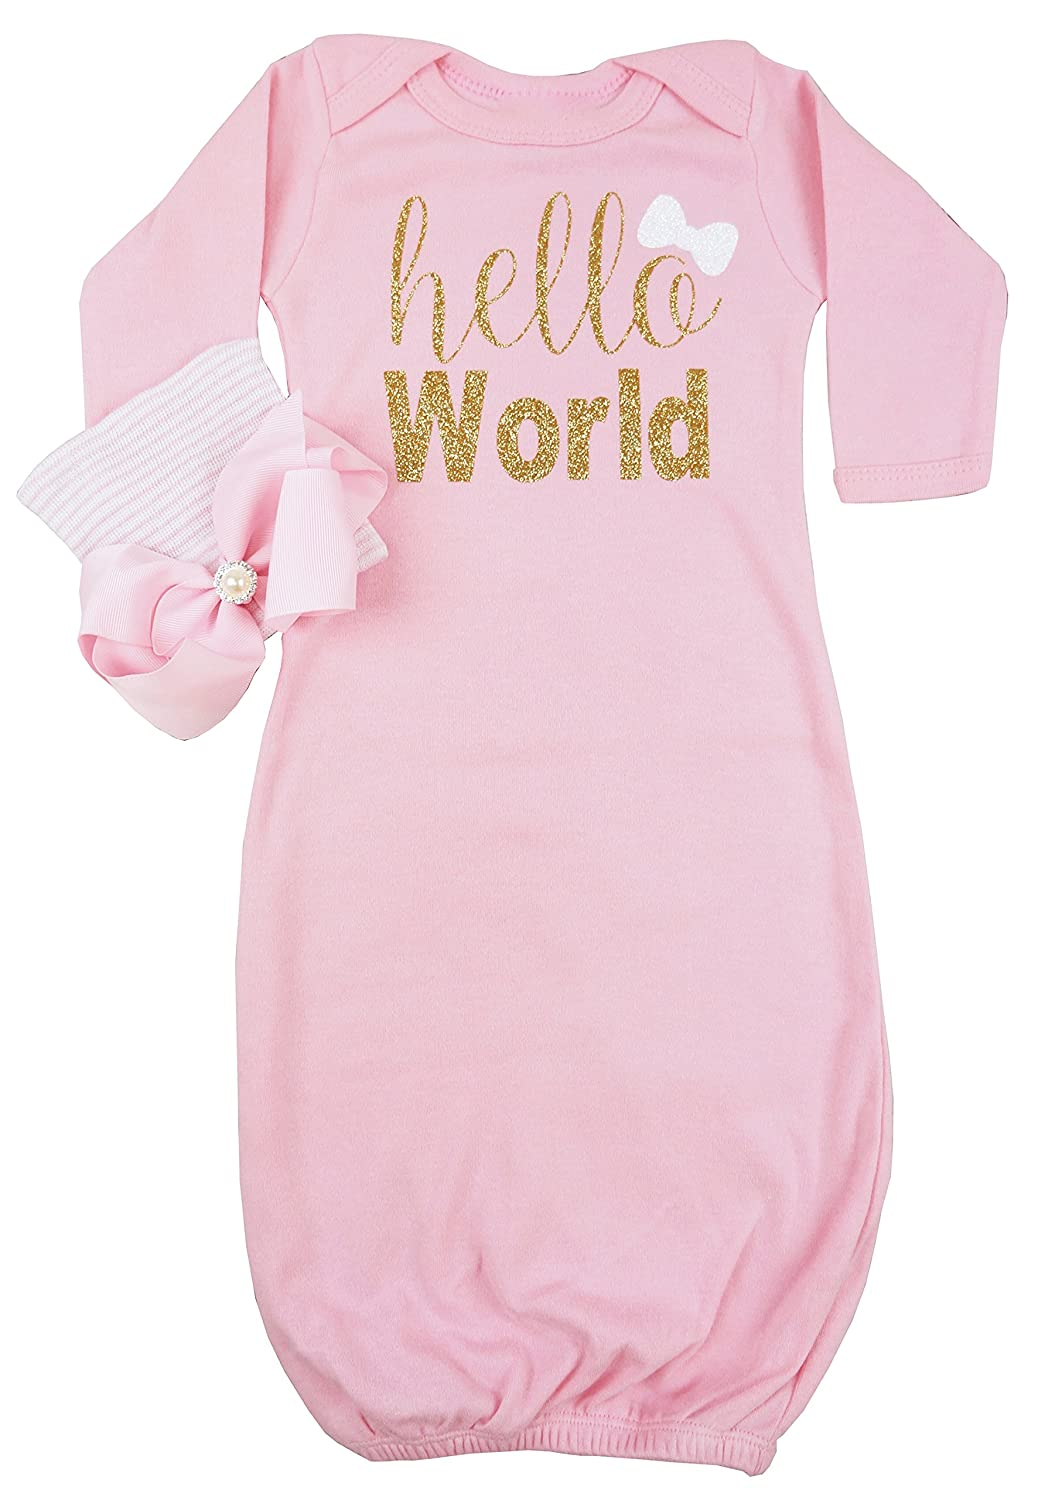 PoshPeanut Newborn Super Soft Baby Girl Gown Sleeper with Hat Infant 0-3 months Posh Peanut